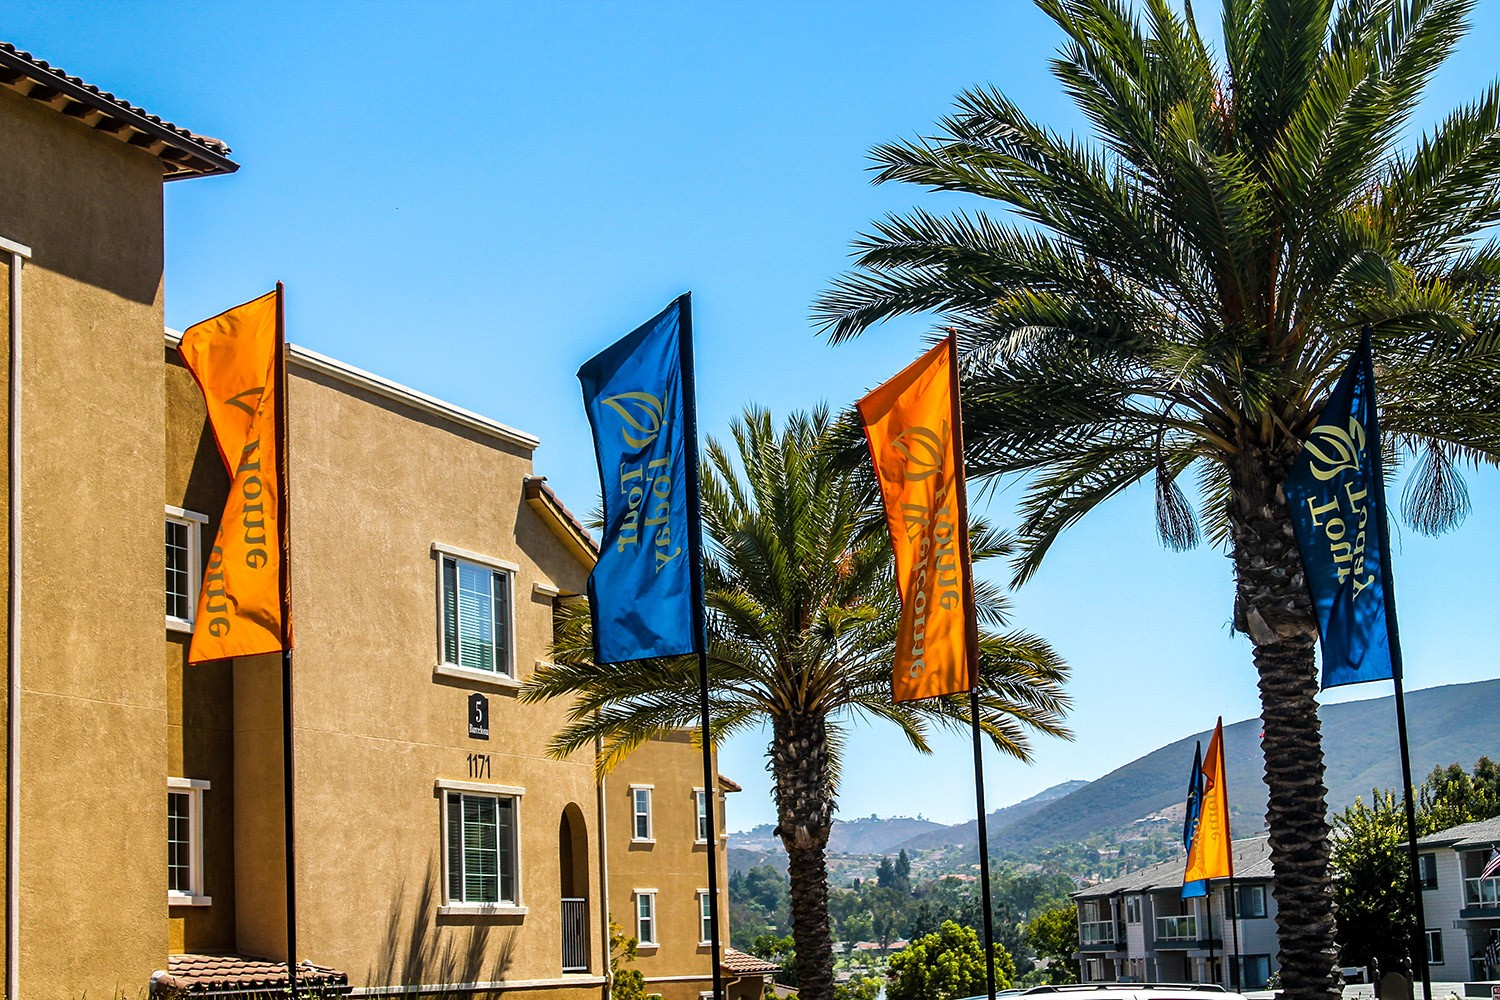 300-pacifica-flags-4